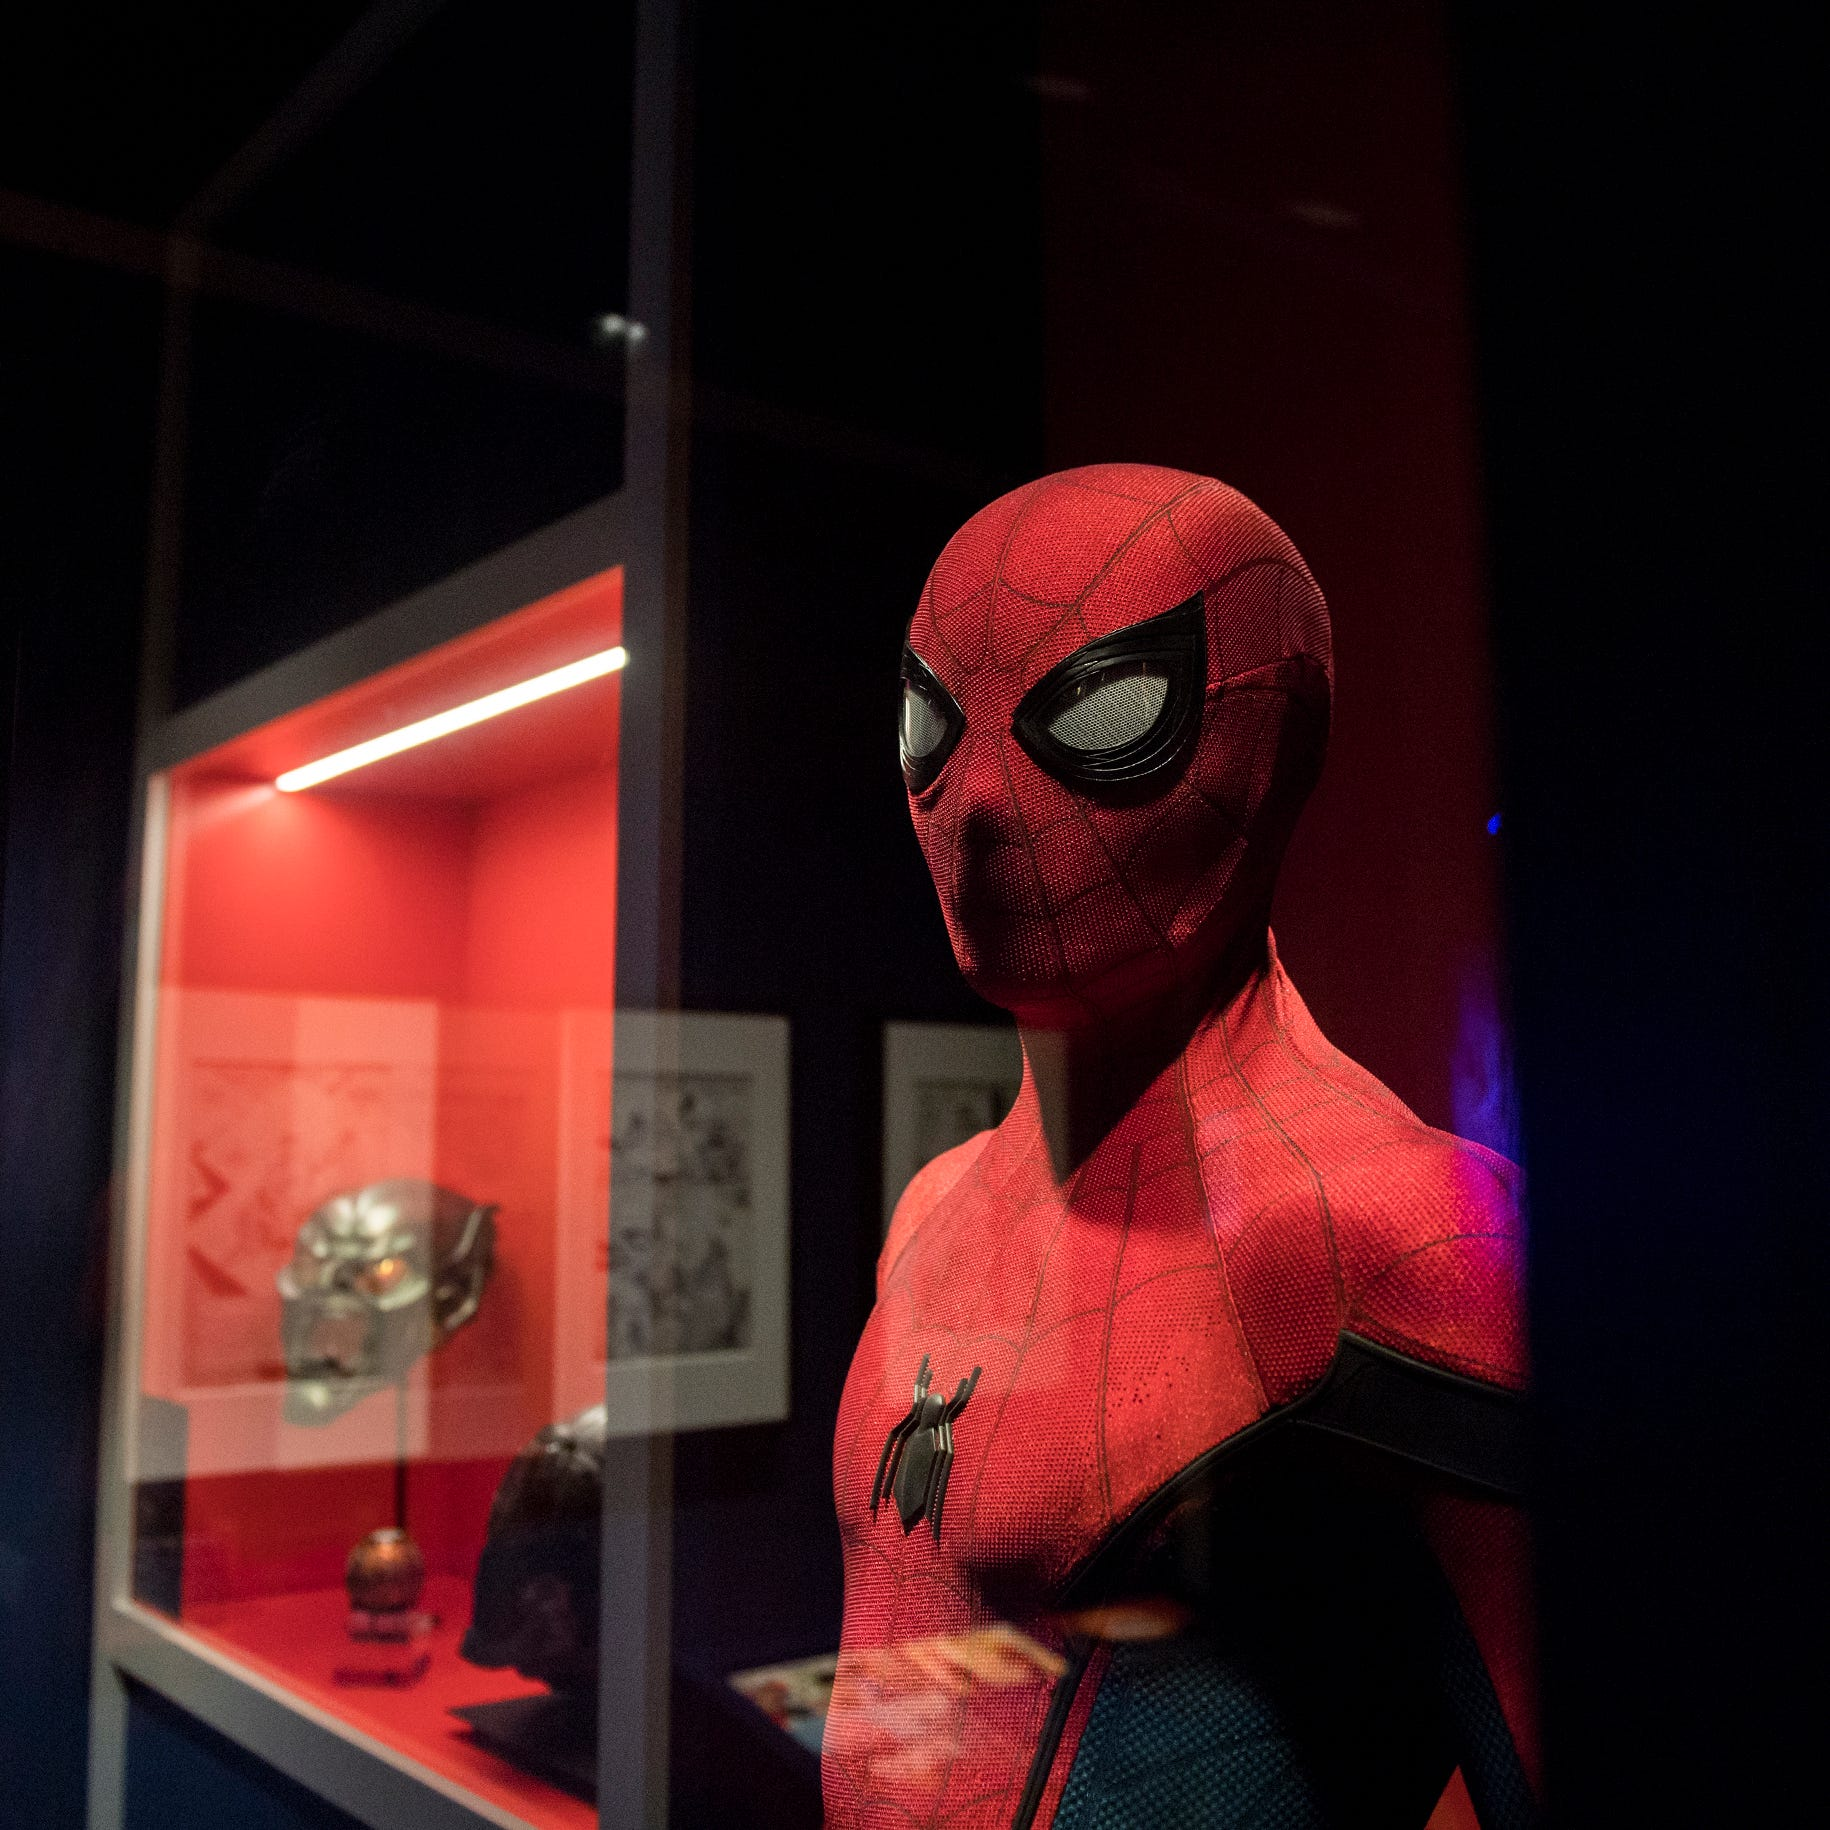 Marvel movies, comics celebrated at Philadelphia's Franklin Institute